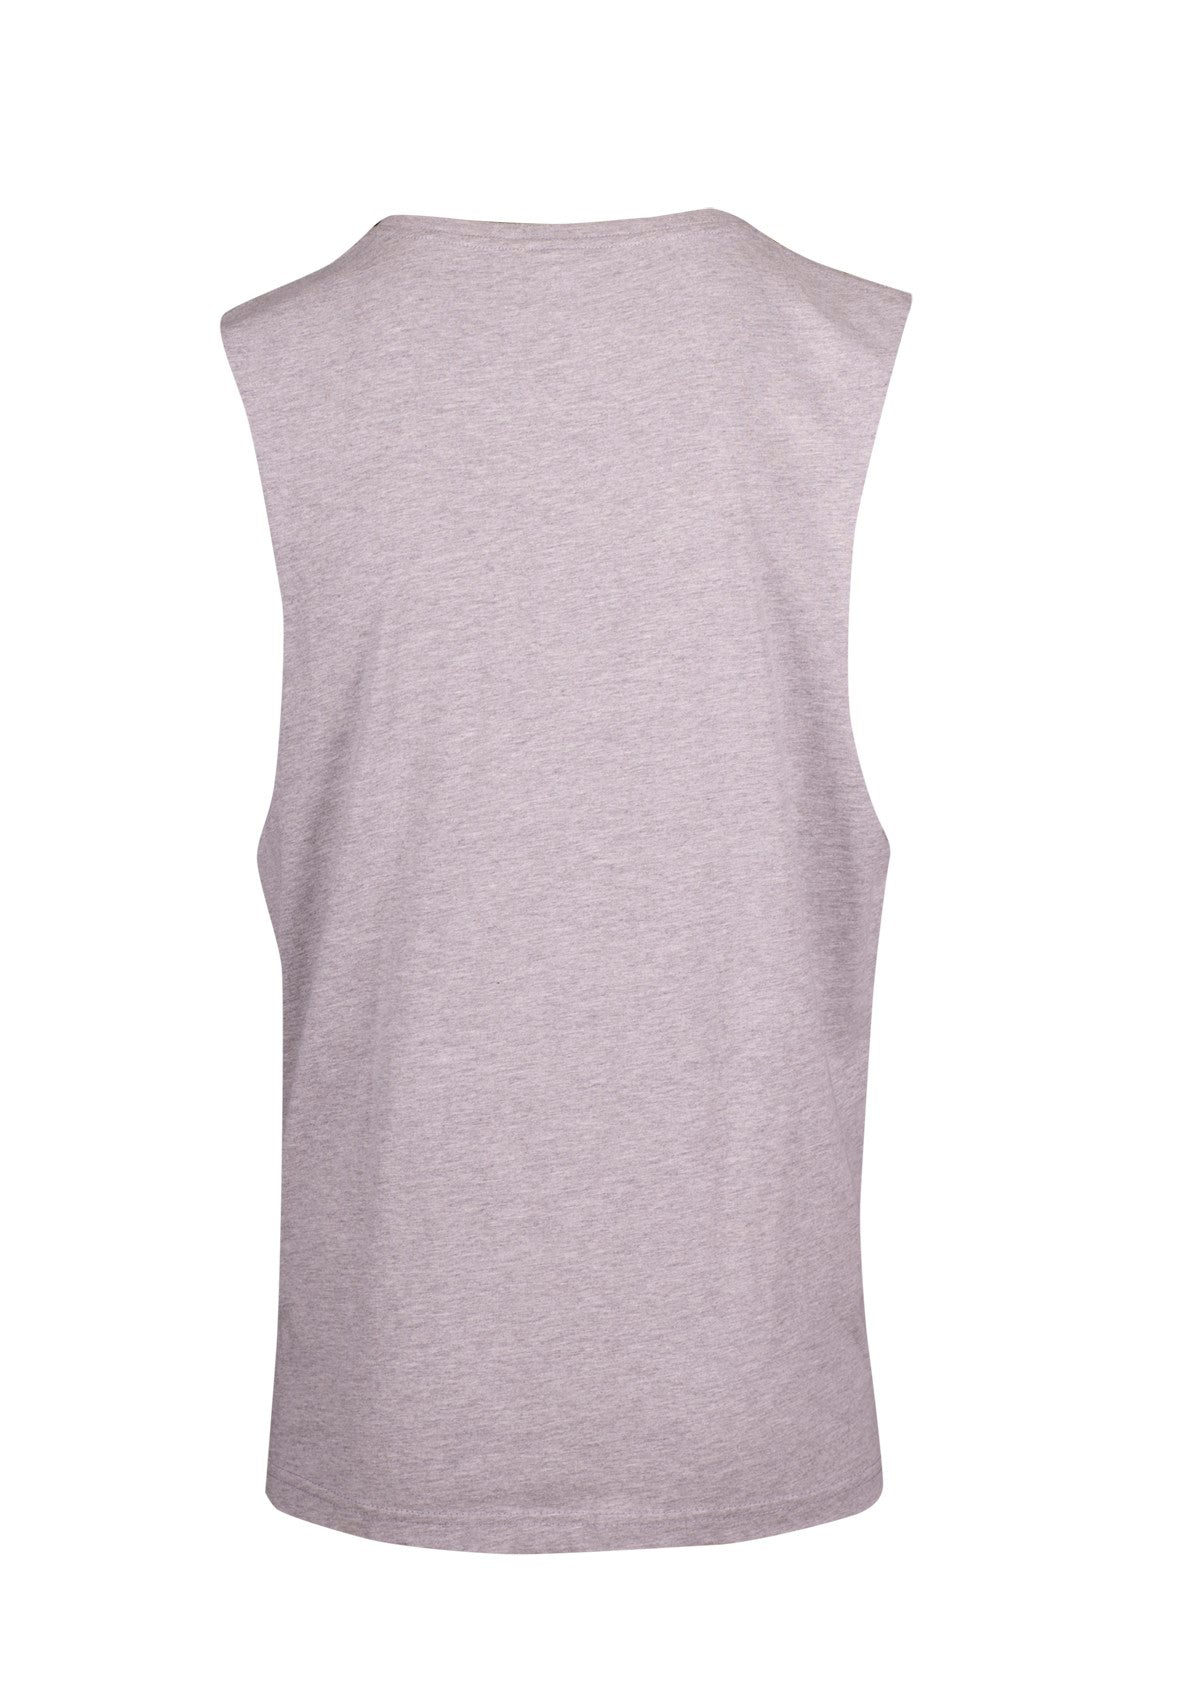 Sleepwear sleeveless tee Grey Marle/Black - Eat Sleep Swim Repeat